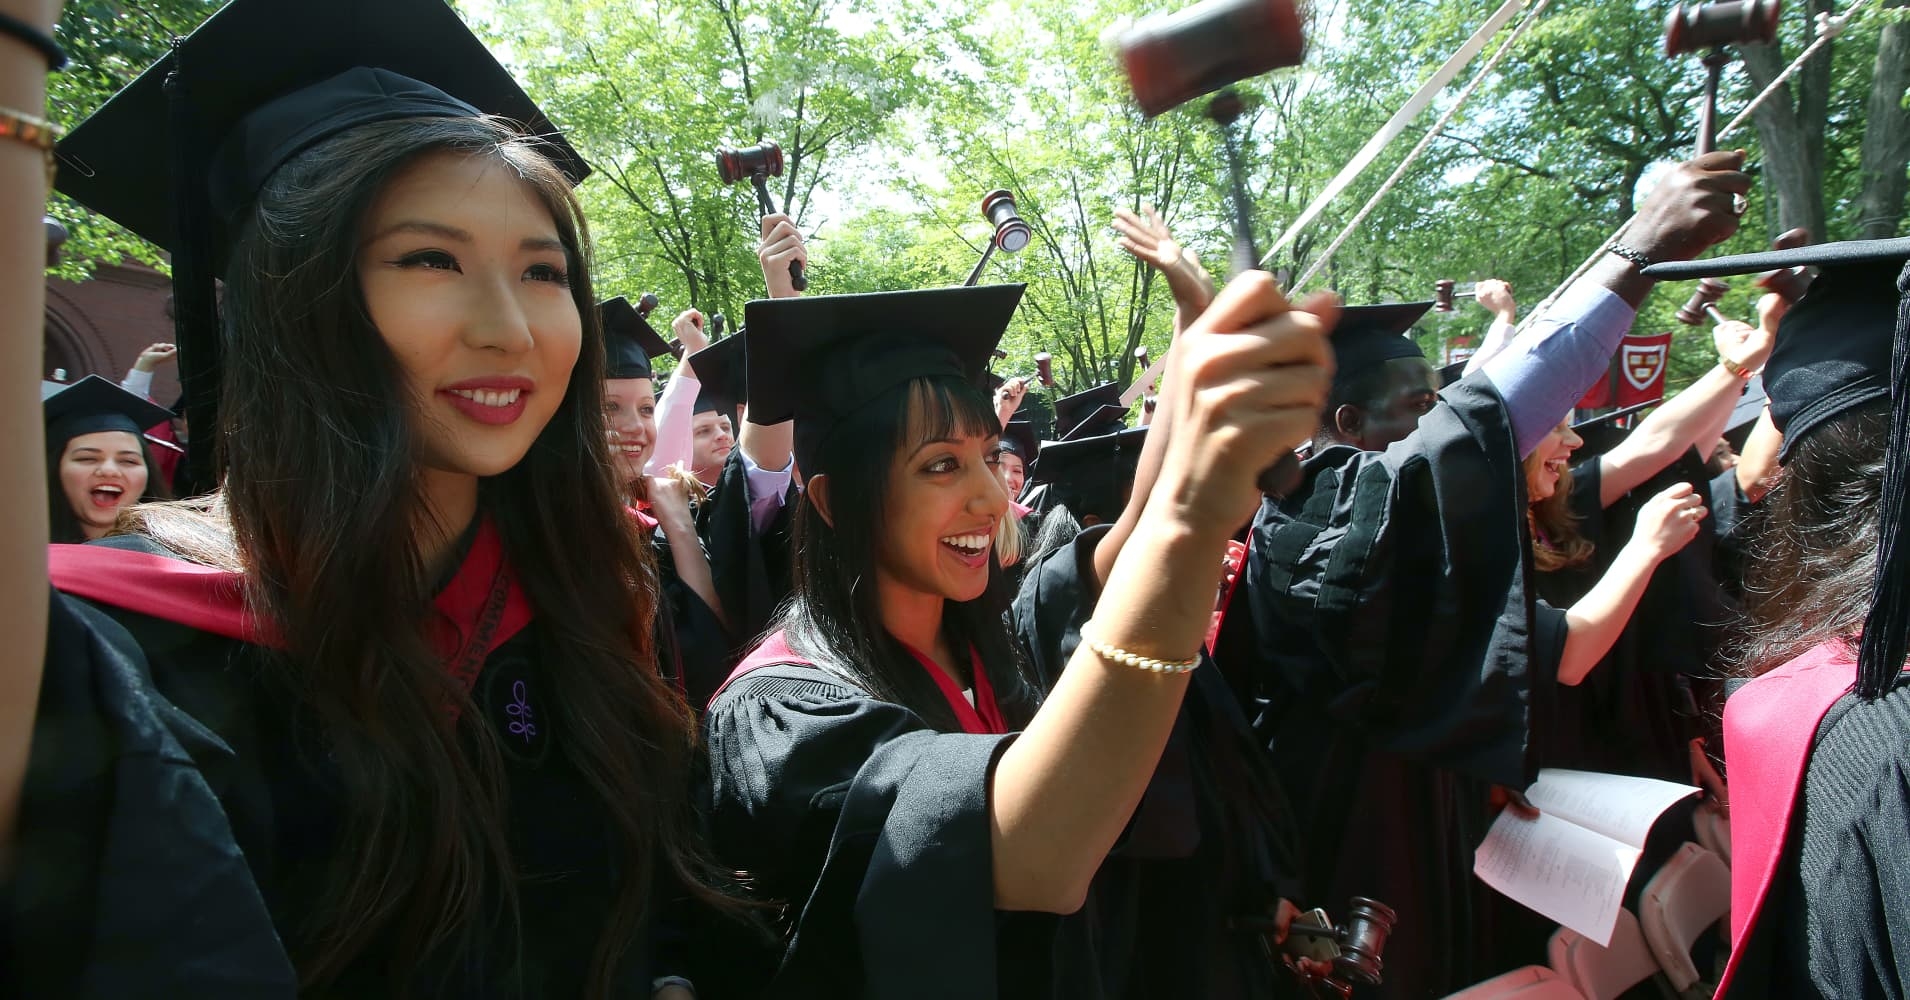 The 10 best universities in the US, according to Forbes